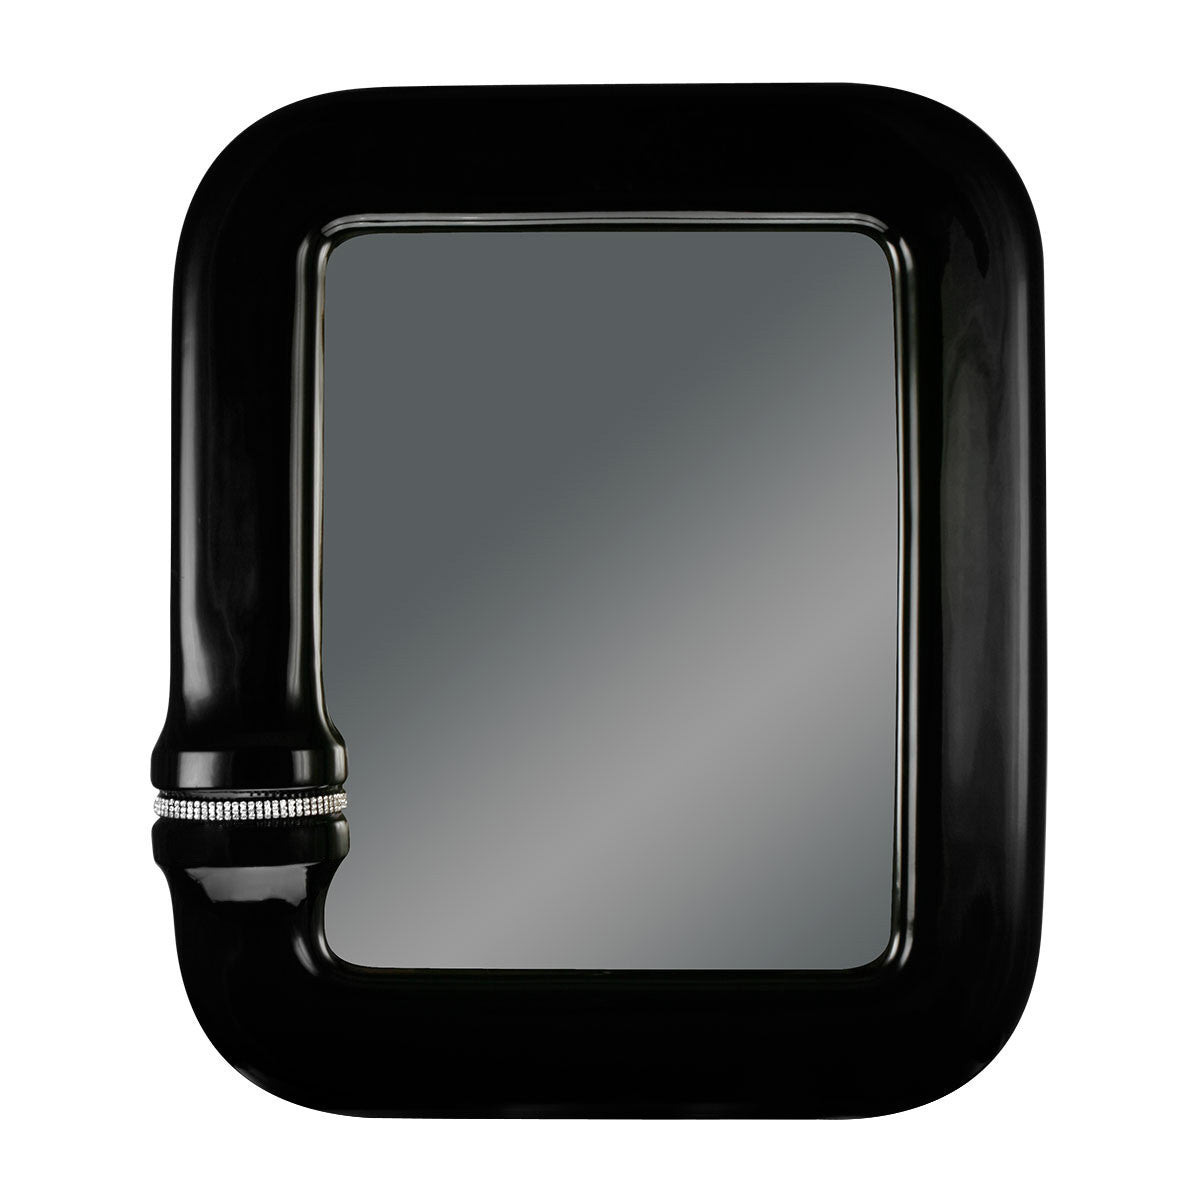 Ceramic rectangular mirror black color